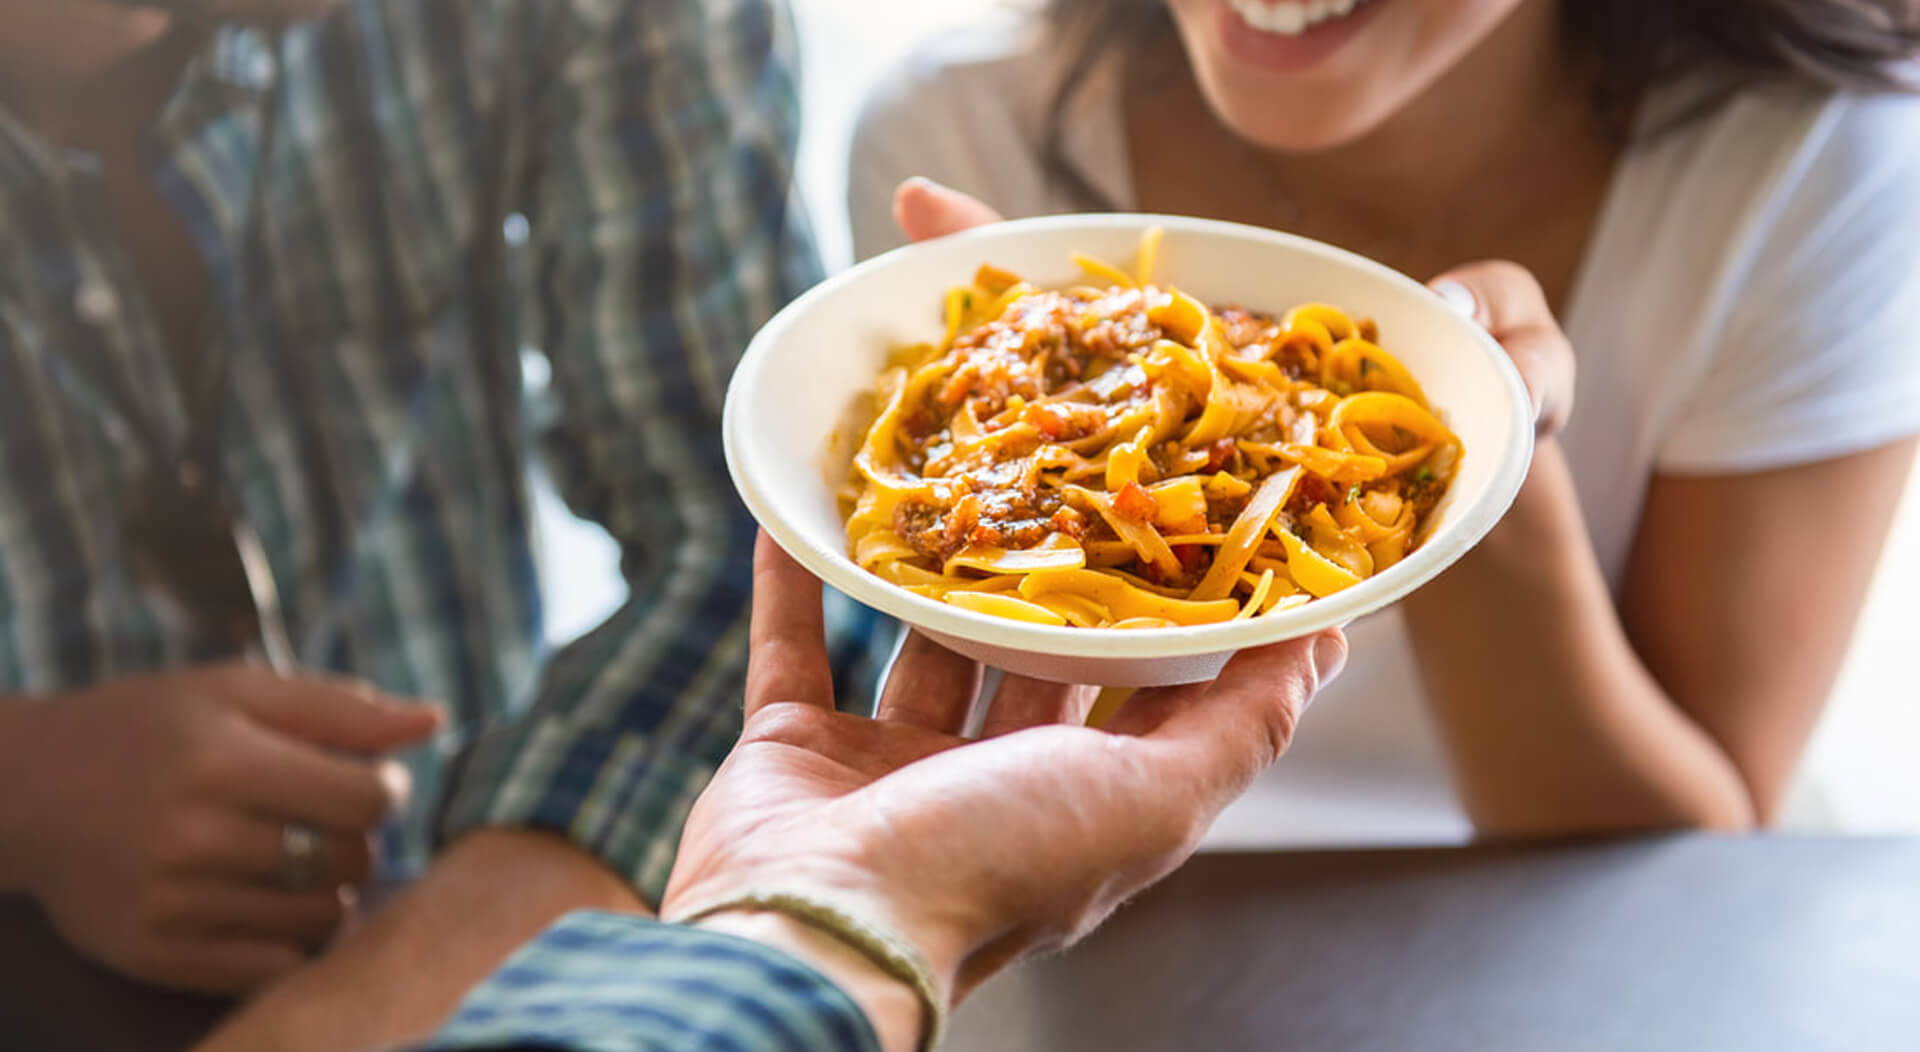 young woman smiling with pleasure while getting pasta that was just ordered at counter of food truck